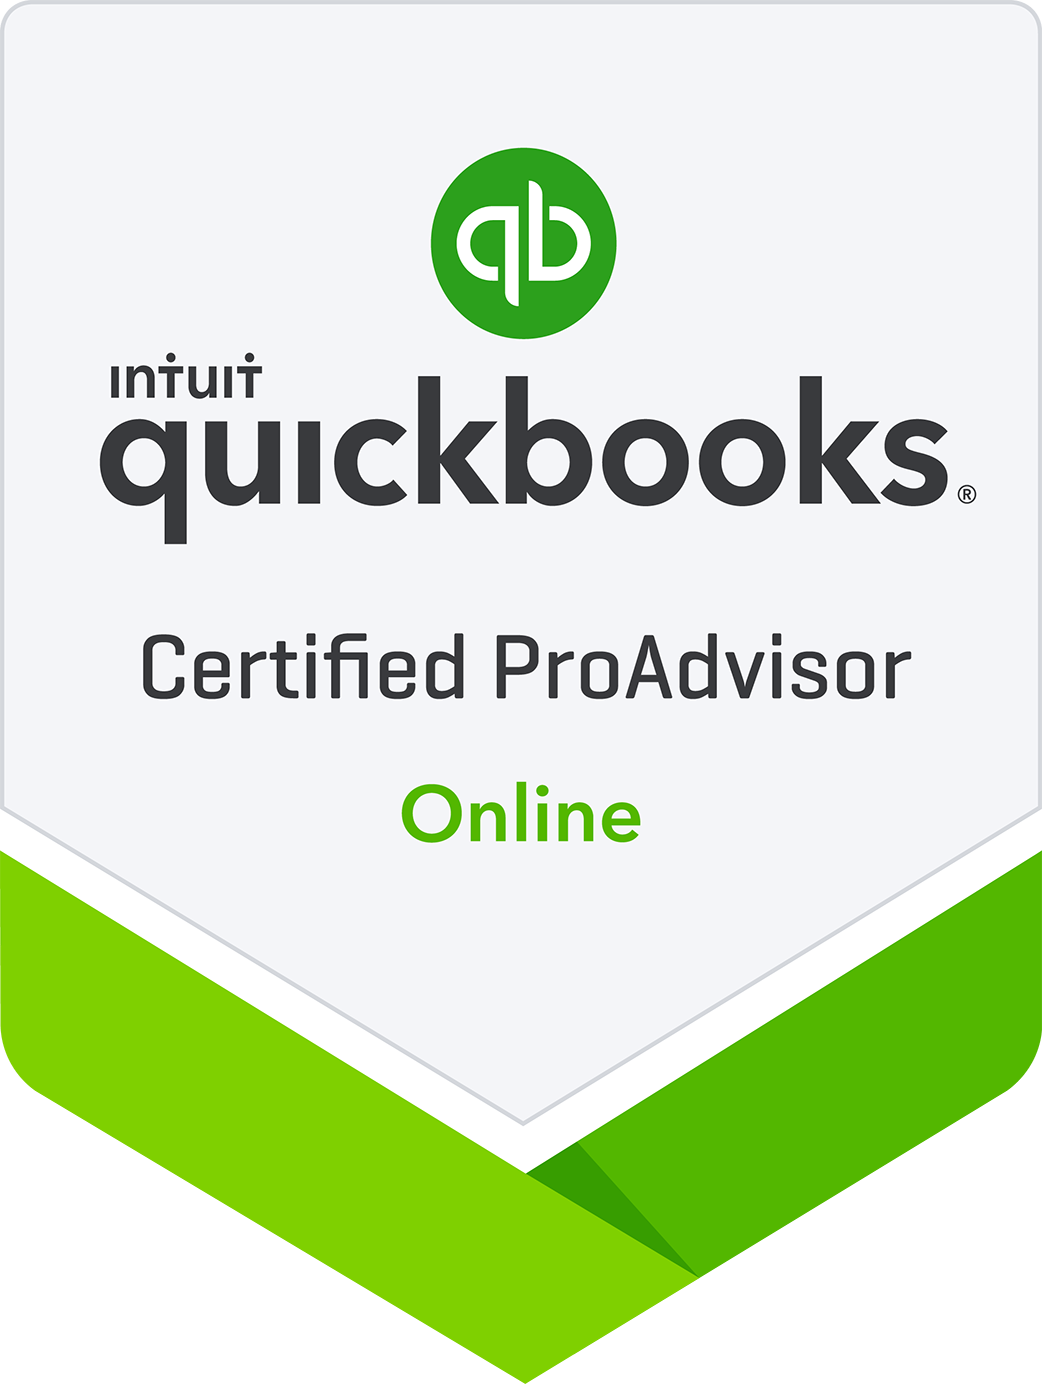 QuickBooks Online Proadvisor in Southern California. Based in Carlsbad, CA